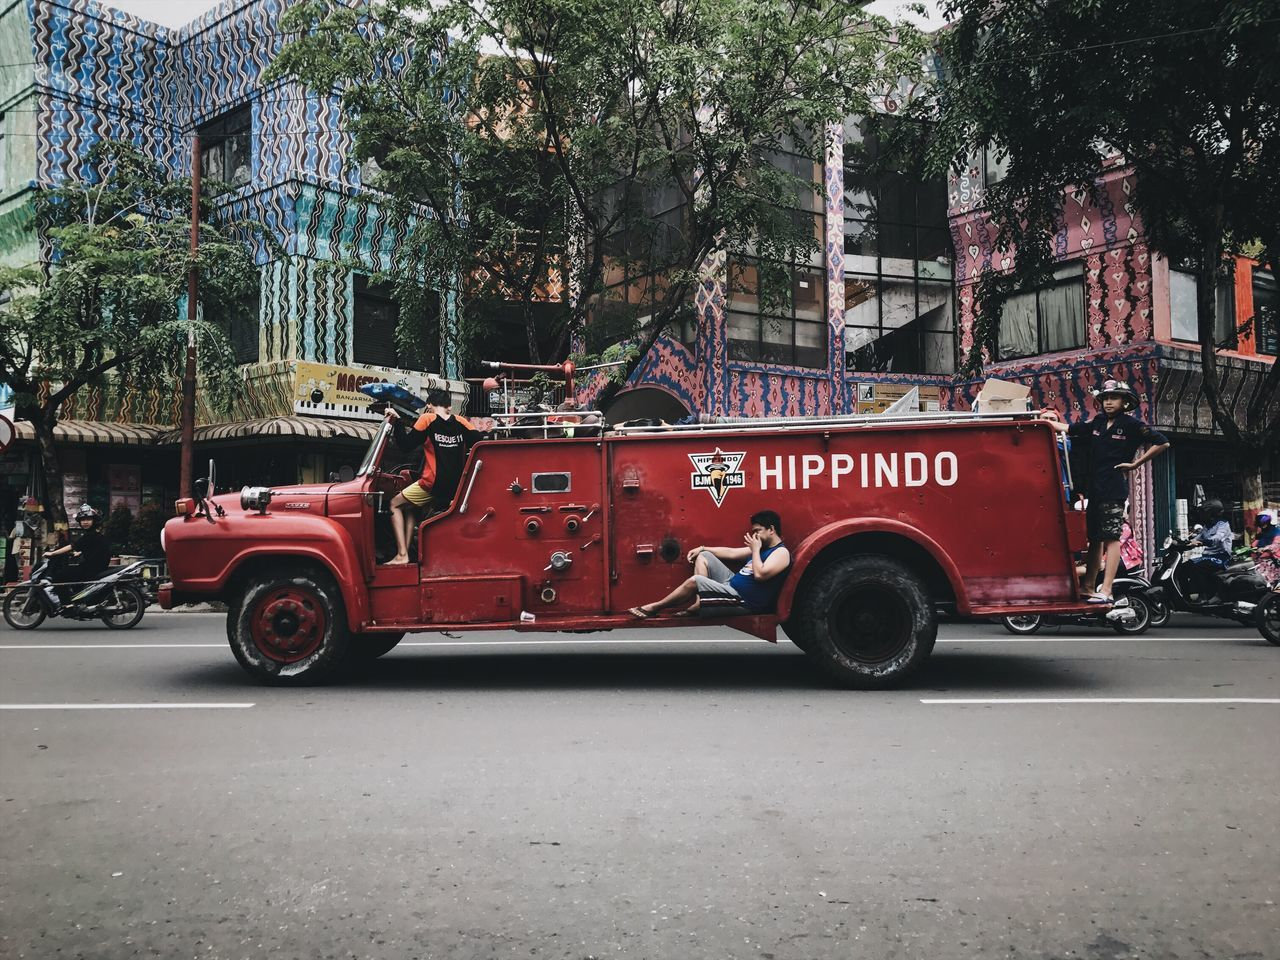 Casual Firefighters Land Vehicle Mode Of Transport Transportation Architecture Red Tree Fire Engine Building Exterior Car Outdoors Day Built Structure People Chilling The Street Photographer - 2017 EyeEm Awards